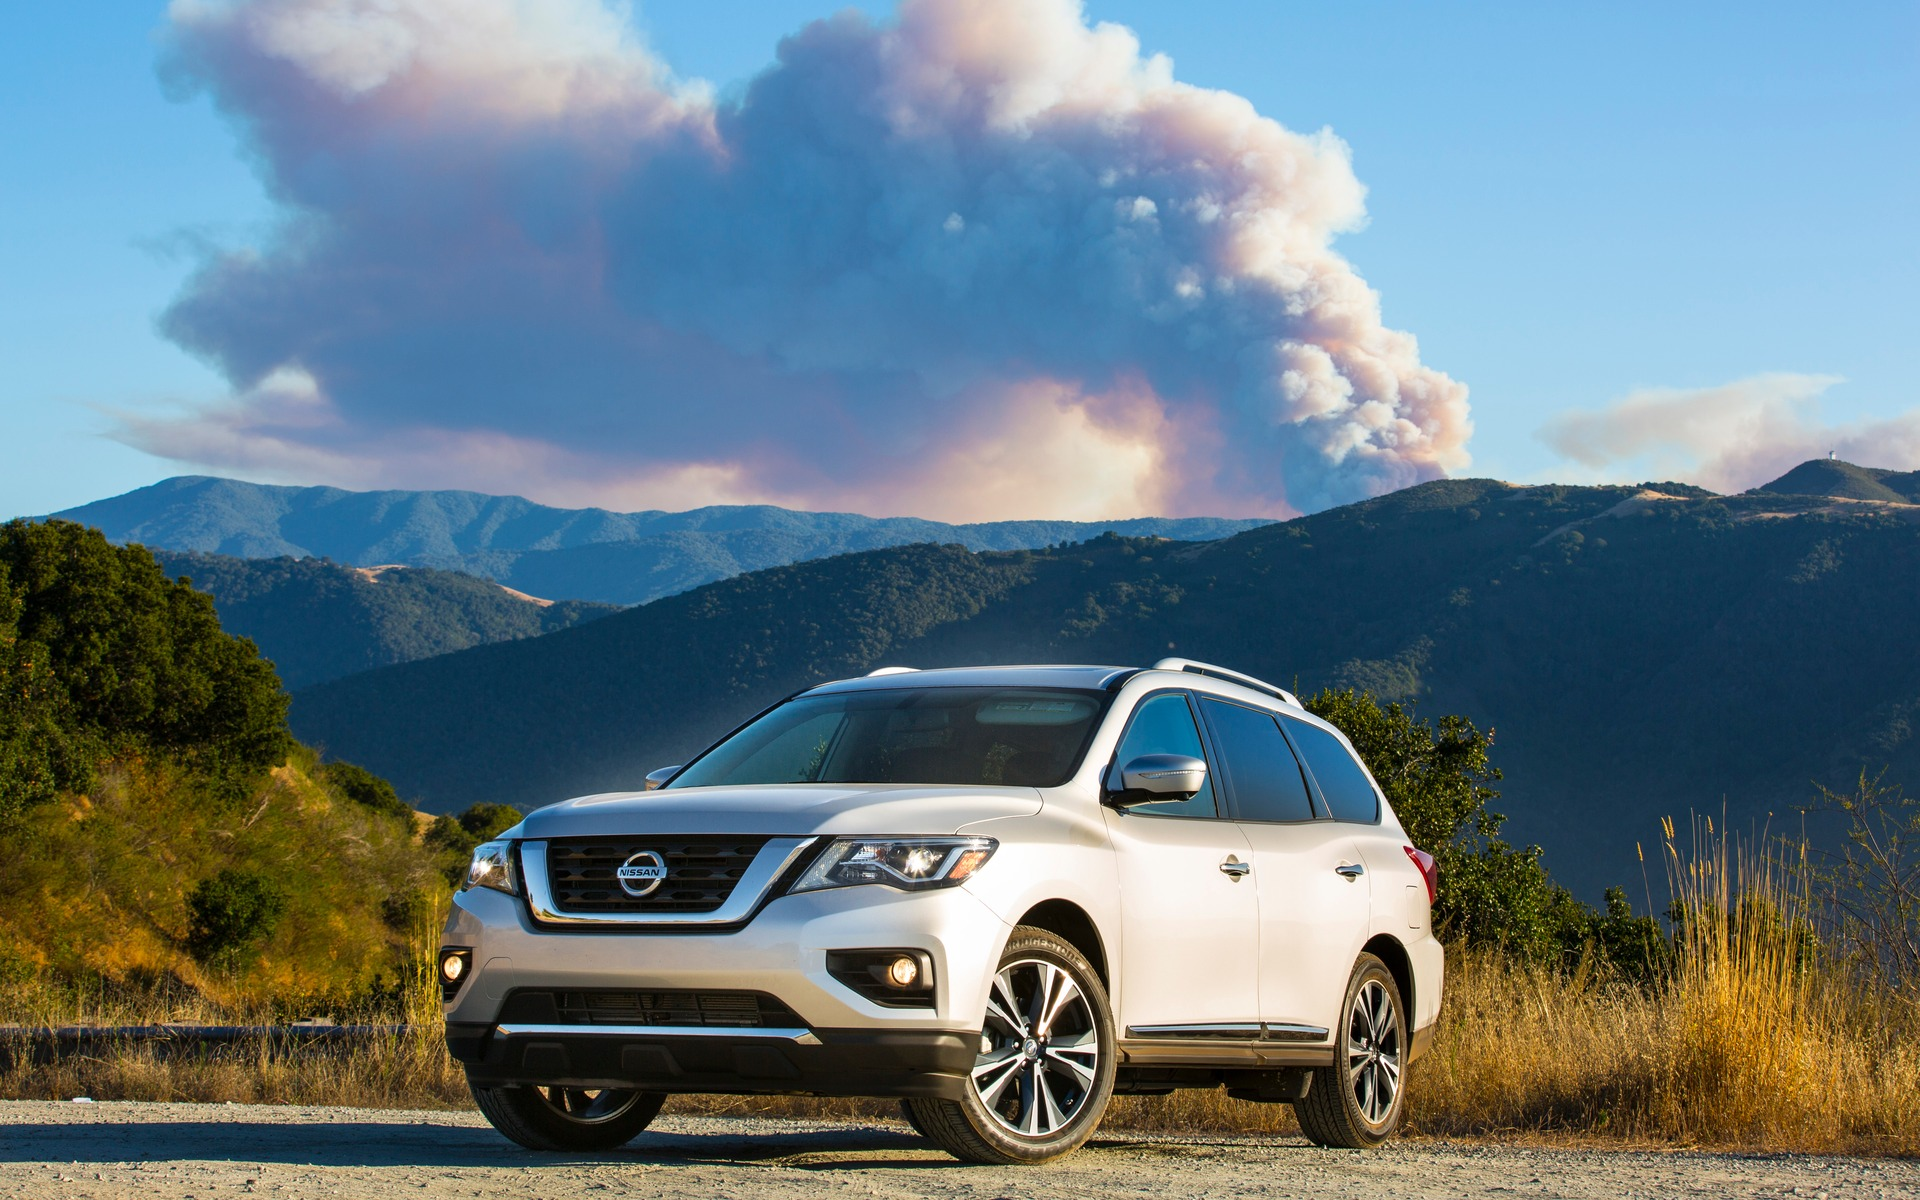 2018 Nissan Pathfinder Slight Tweaks For This Year The Car Guide